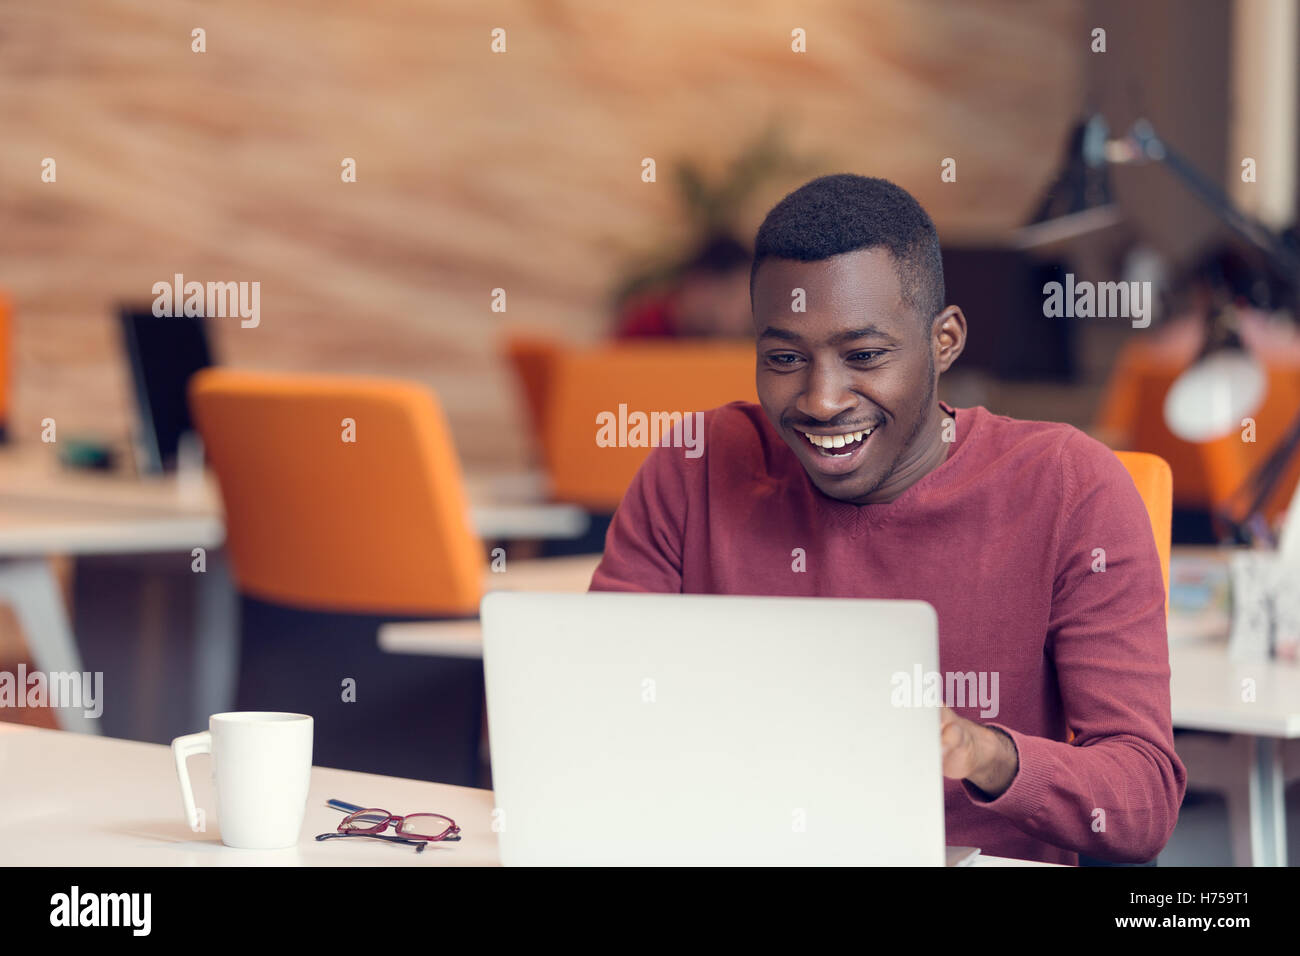 Young business man with a shocked expression working on a laptop - Stock Image